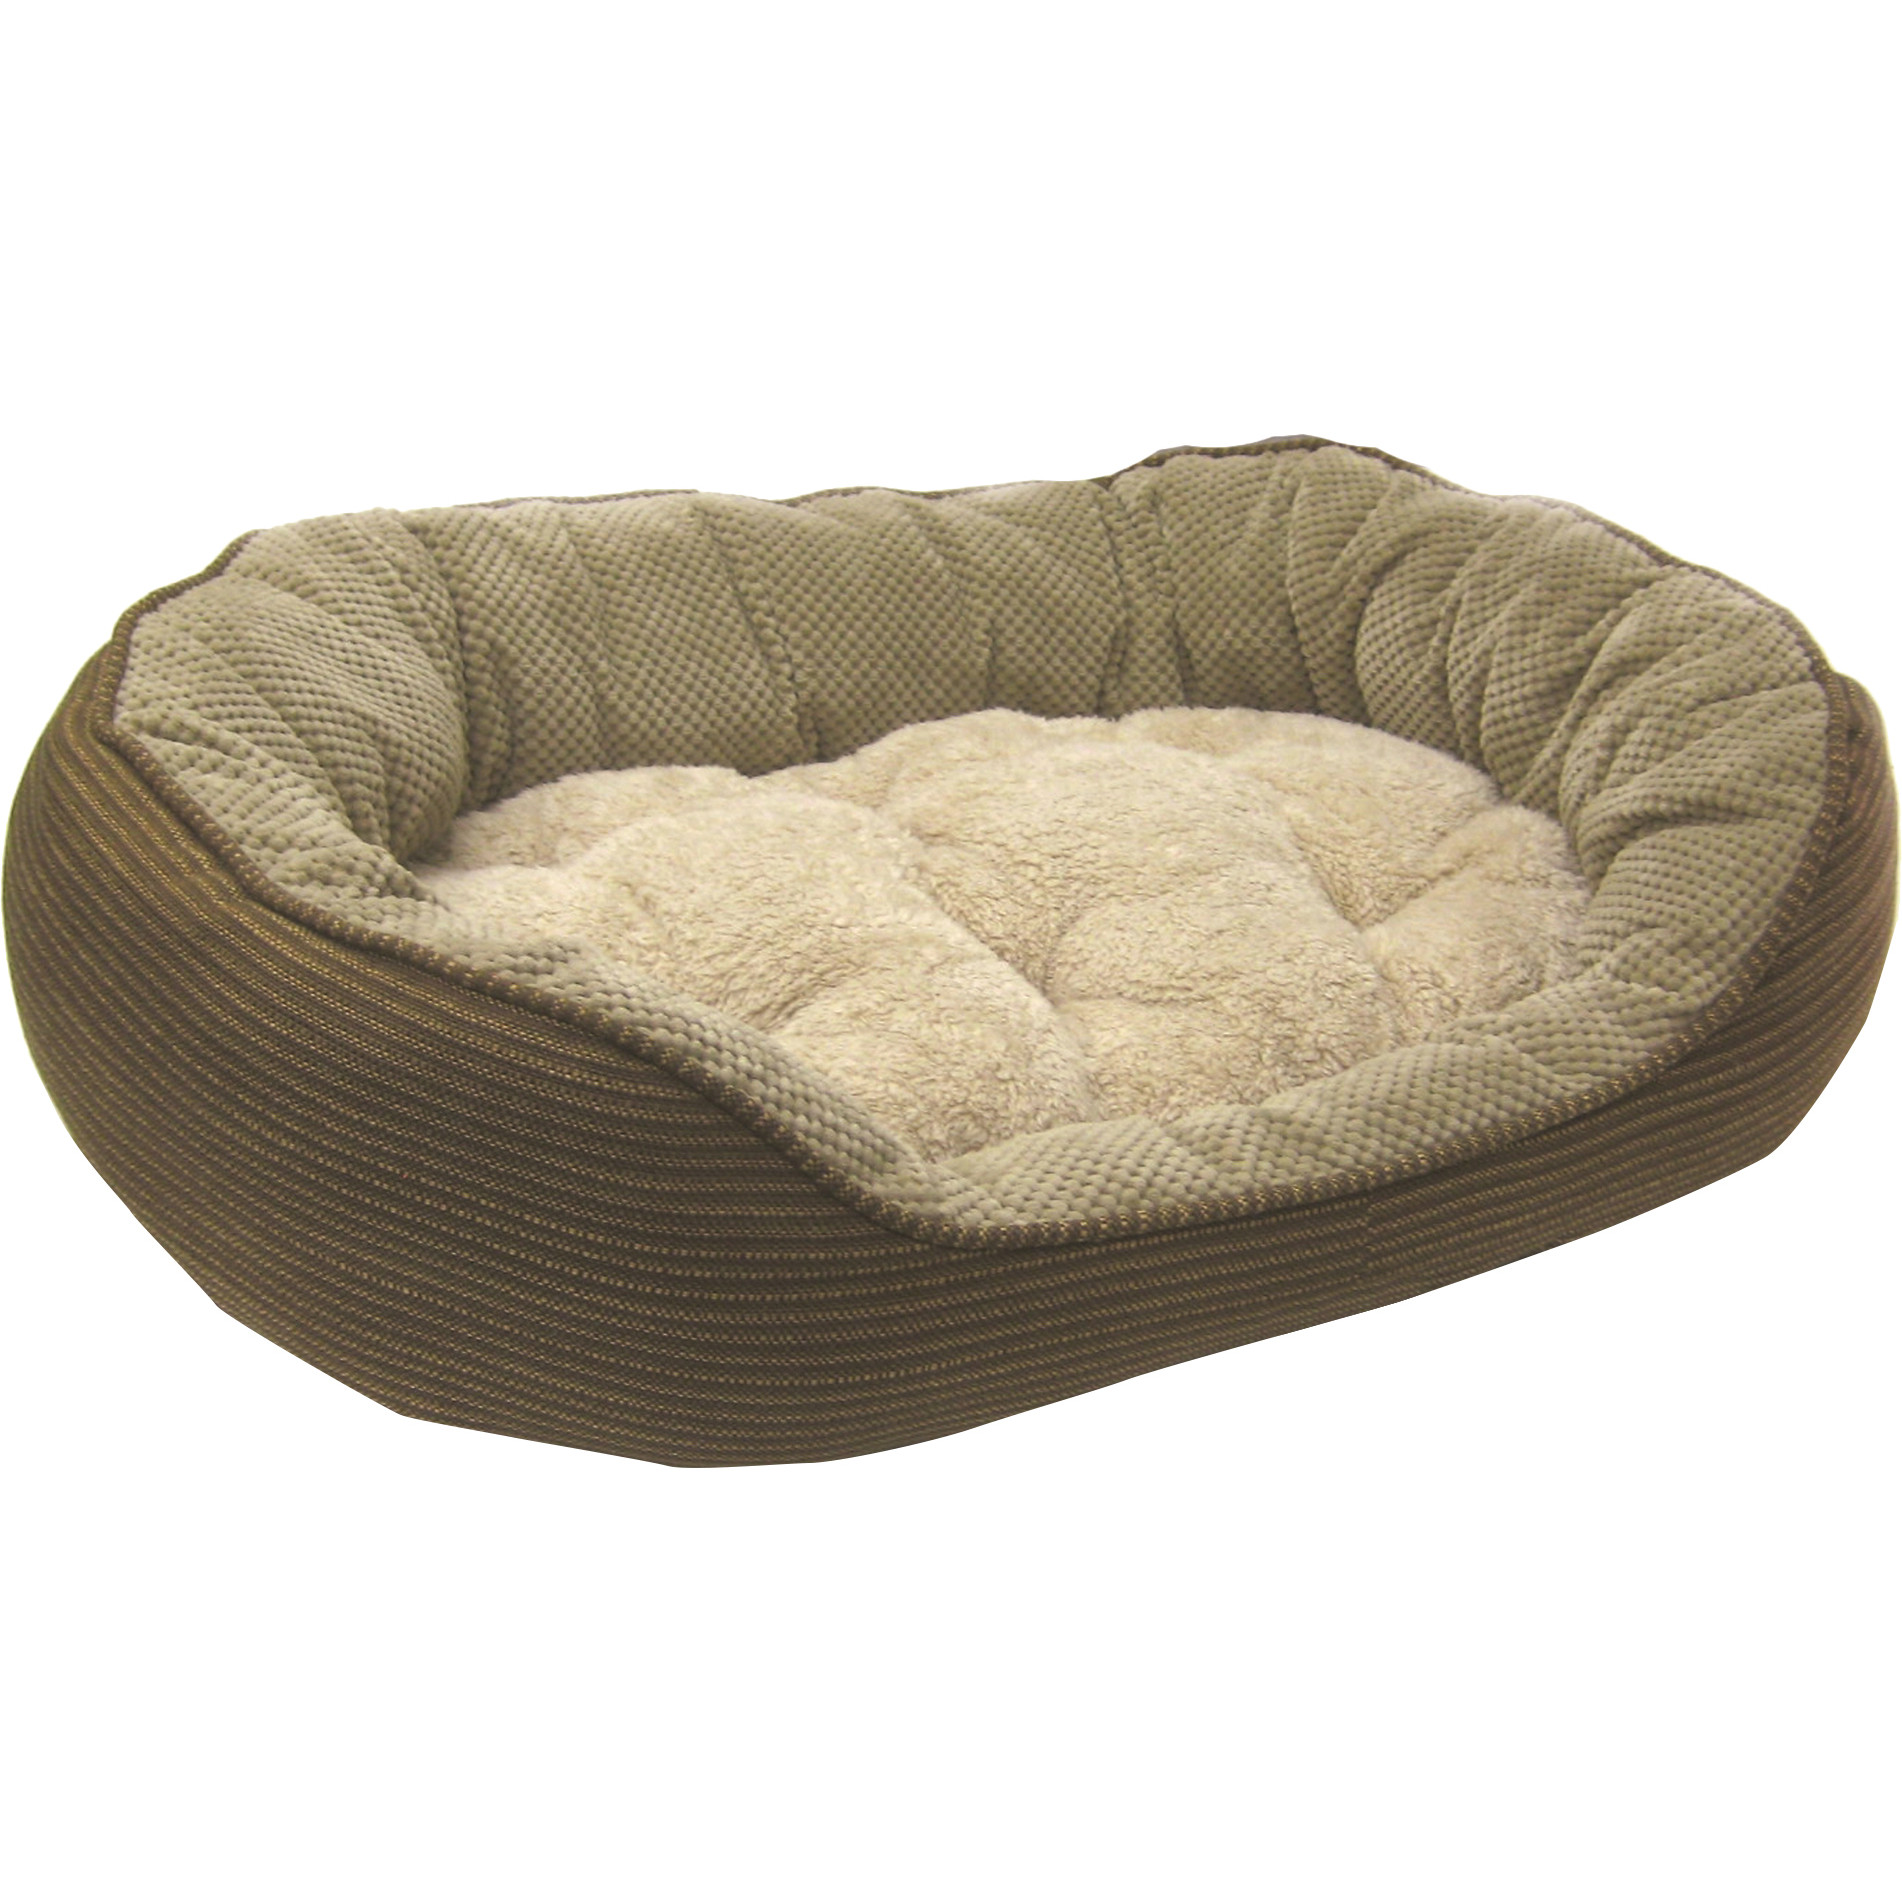 Chew Proof Dog Bed | Orvis Chew Proof Dog Bed | Dog Beds That Are Chew Proof